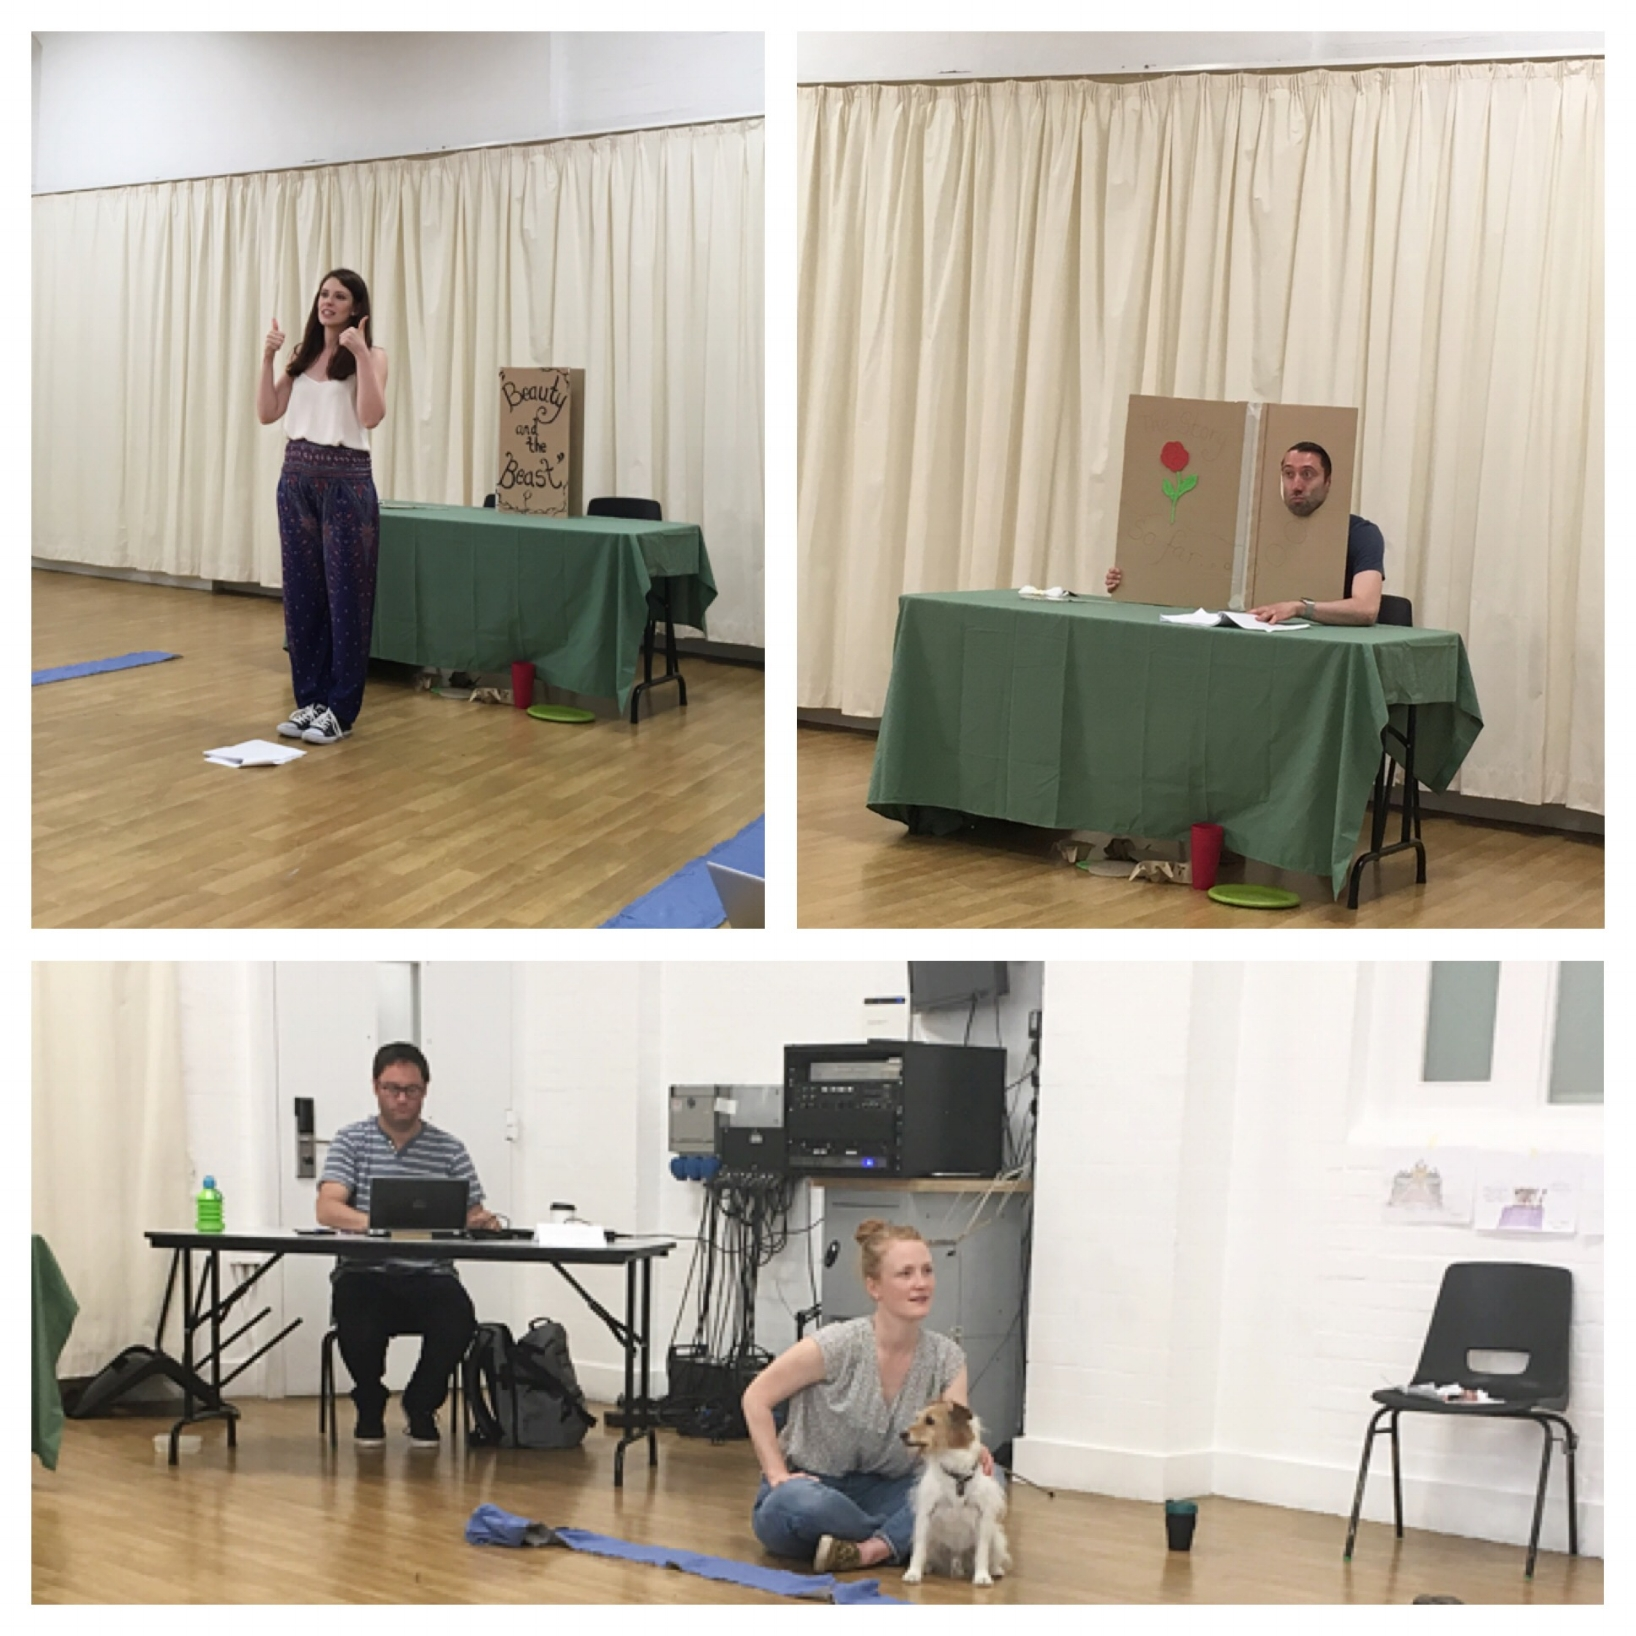 Above, our actors Elana and Craig. Below, writer Andrew, director Abi and dog Basil.